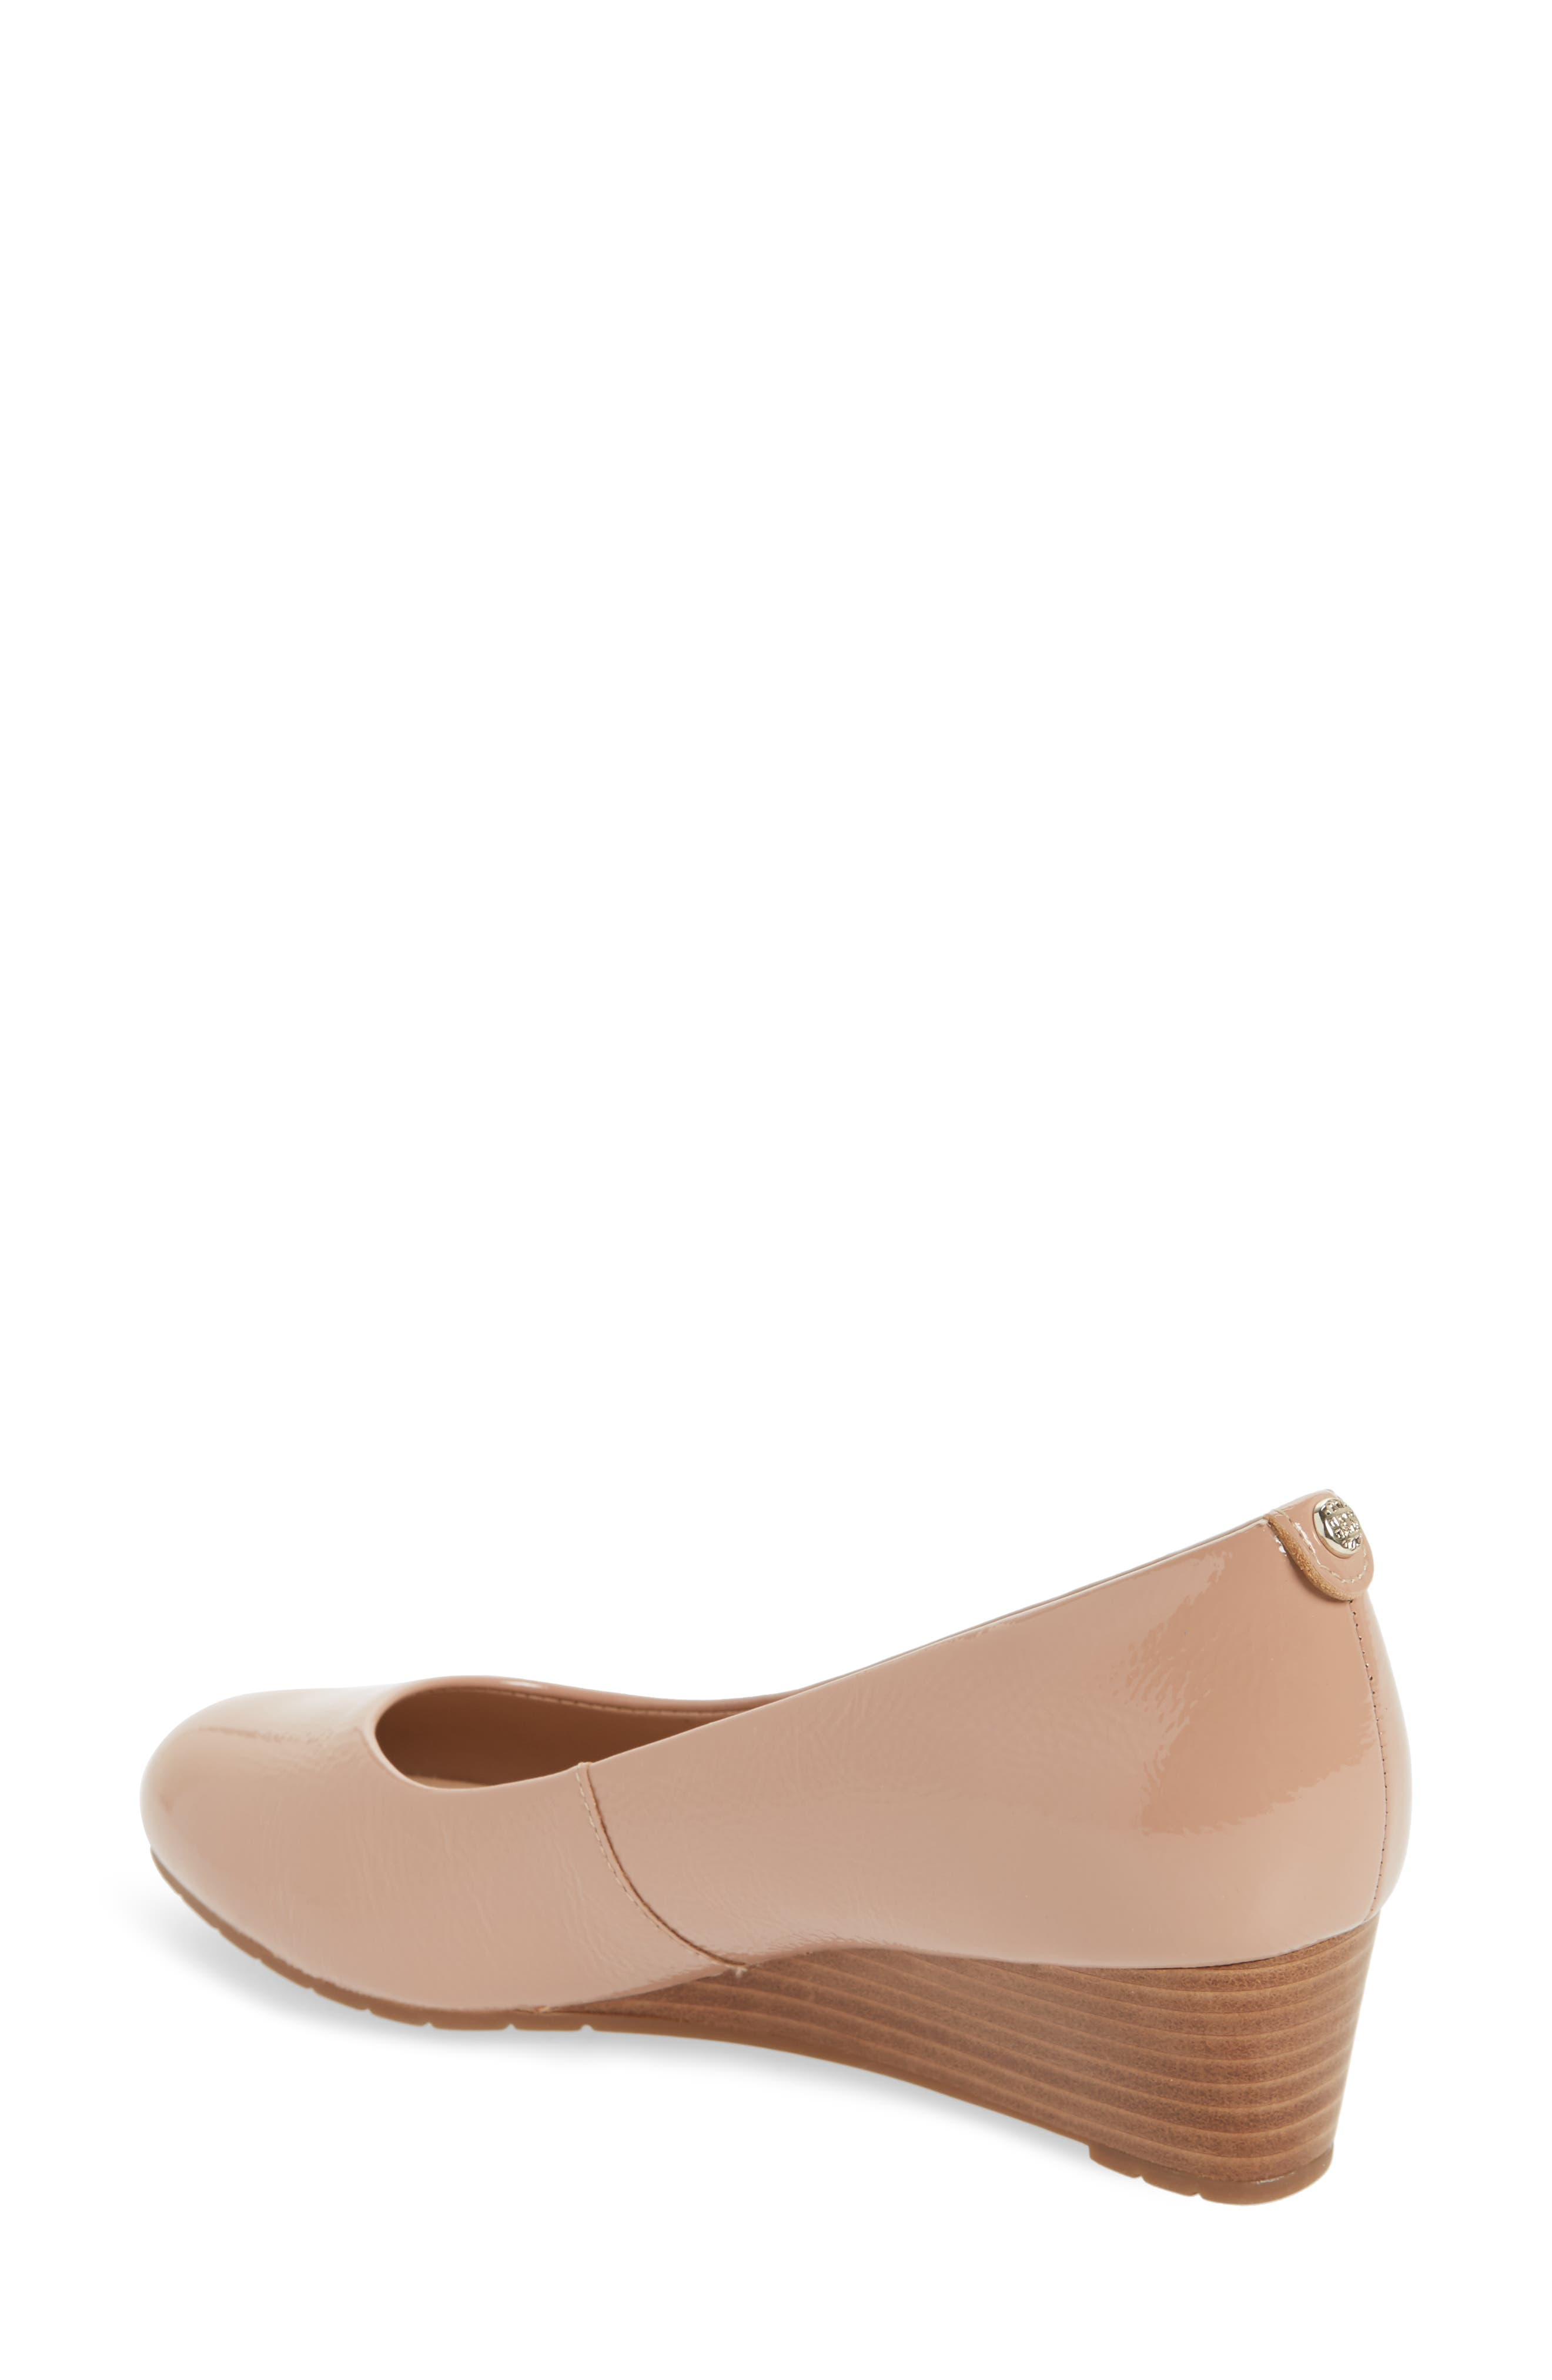 Vendra Bloom Wedge Pump,                             Alternate thumbnail 2, color,                             Beige Patent Leather